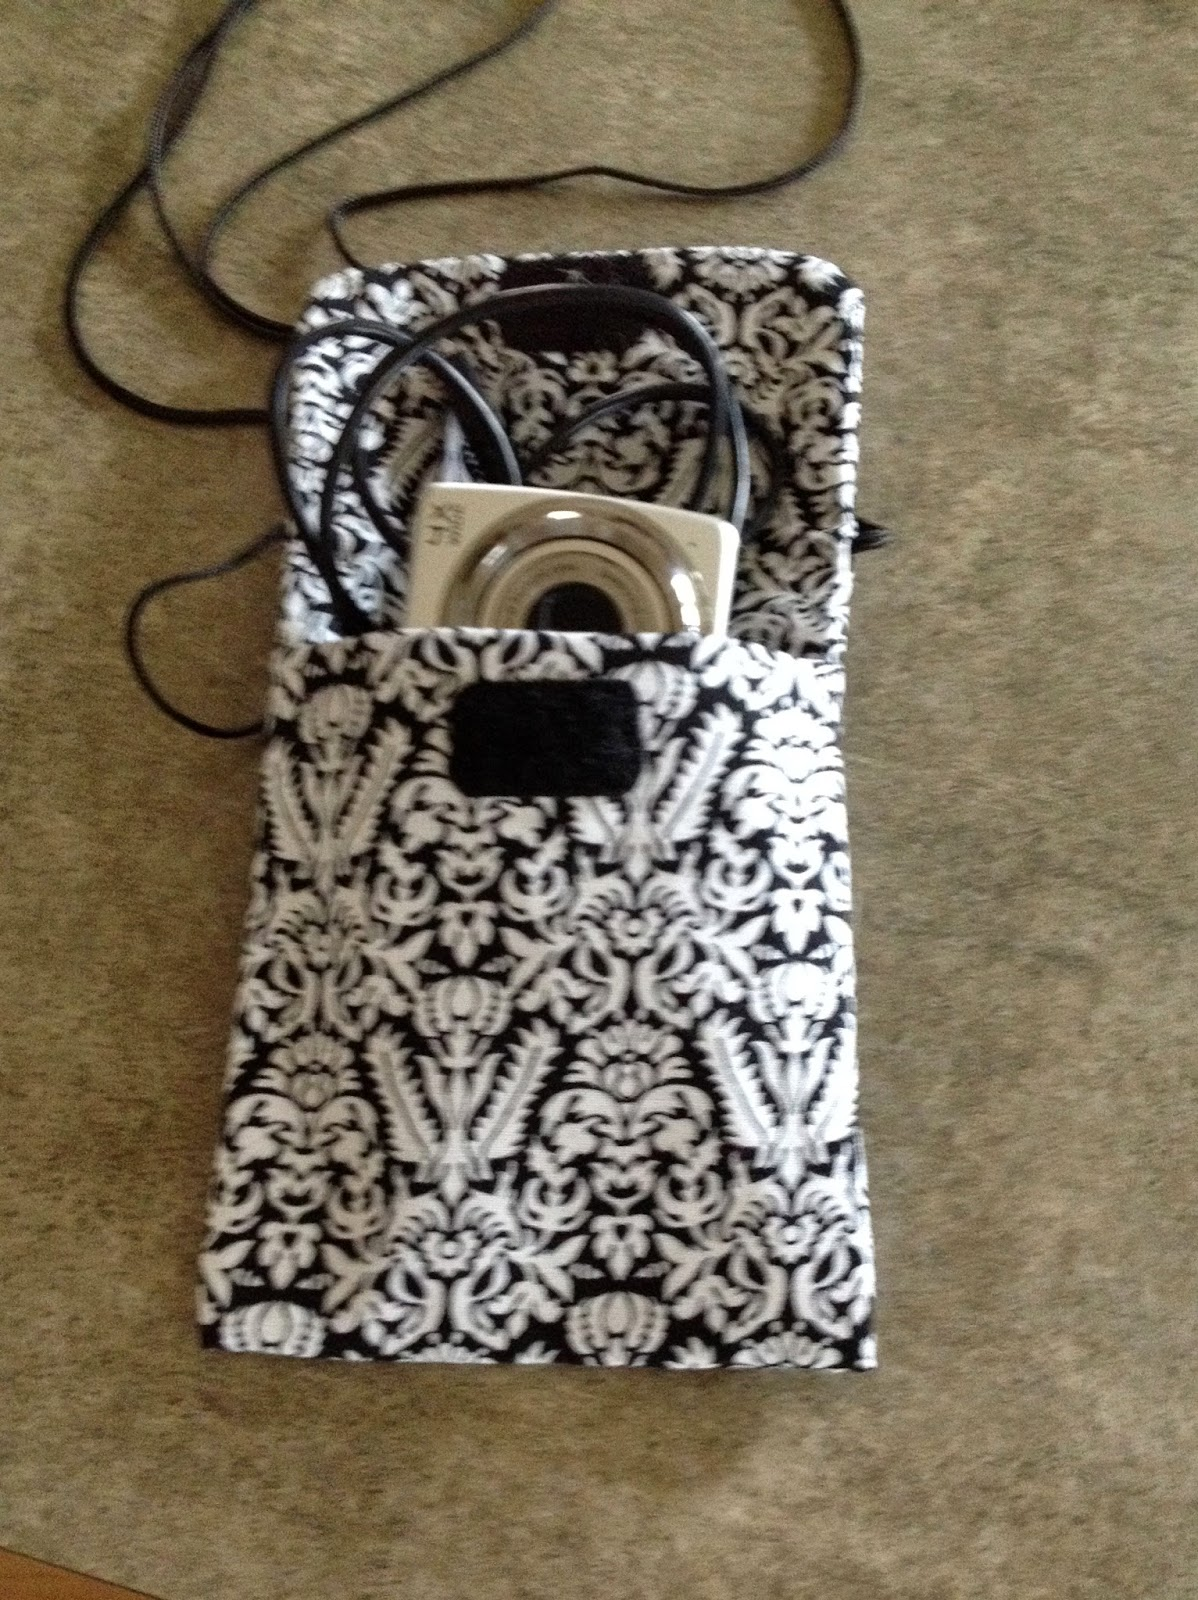 Quiltsmart Cell Phone Bag with Camera and Cord